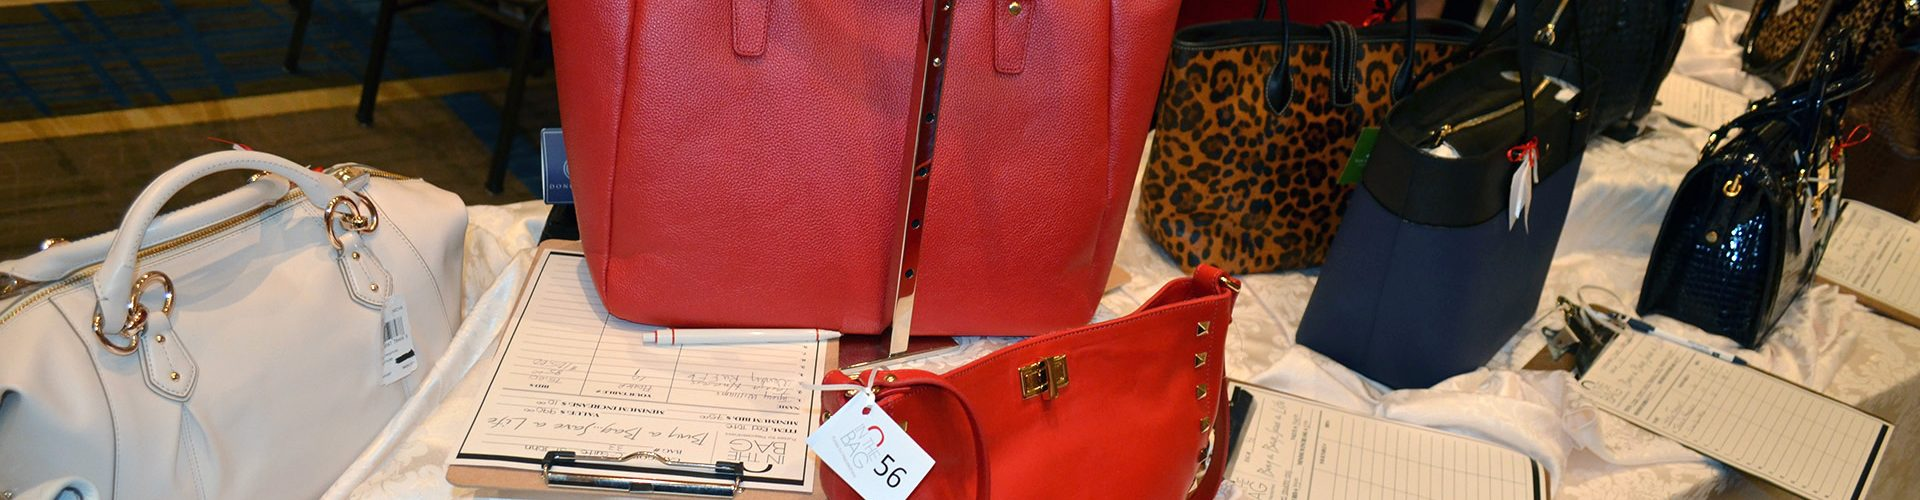 in-the-bag-2015-table-red-purses-1920